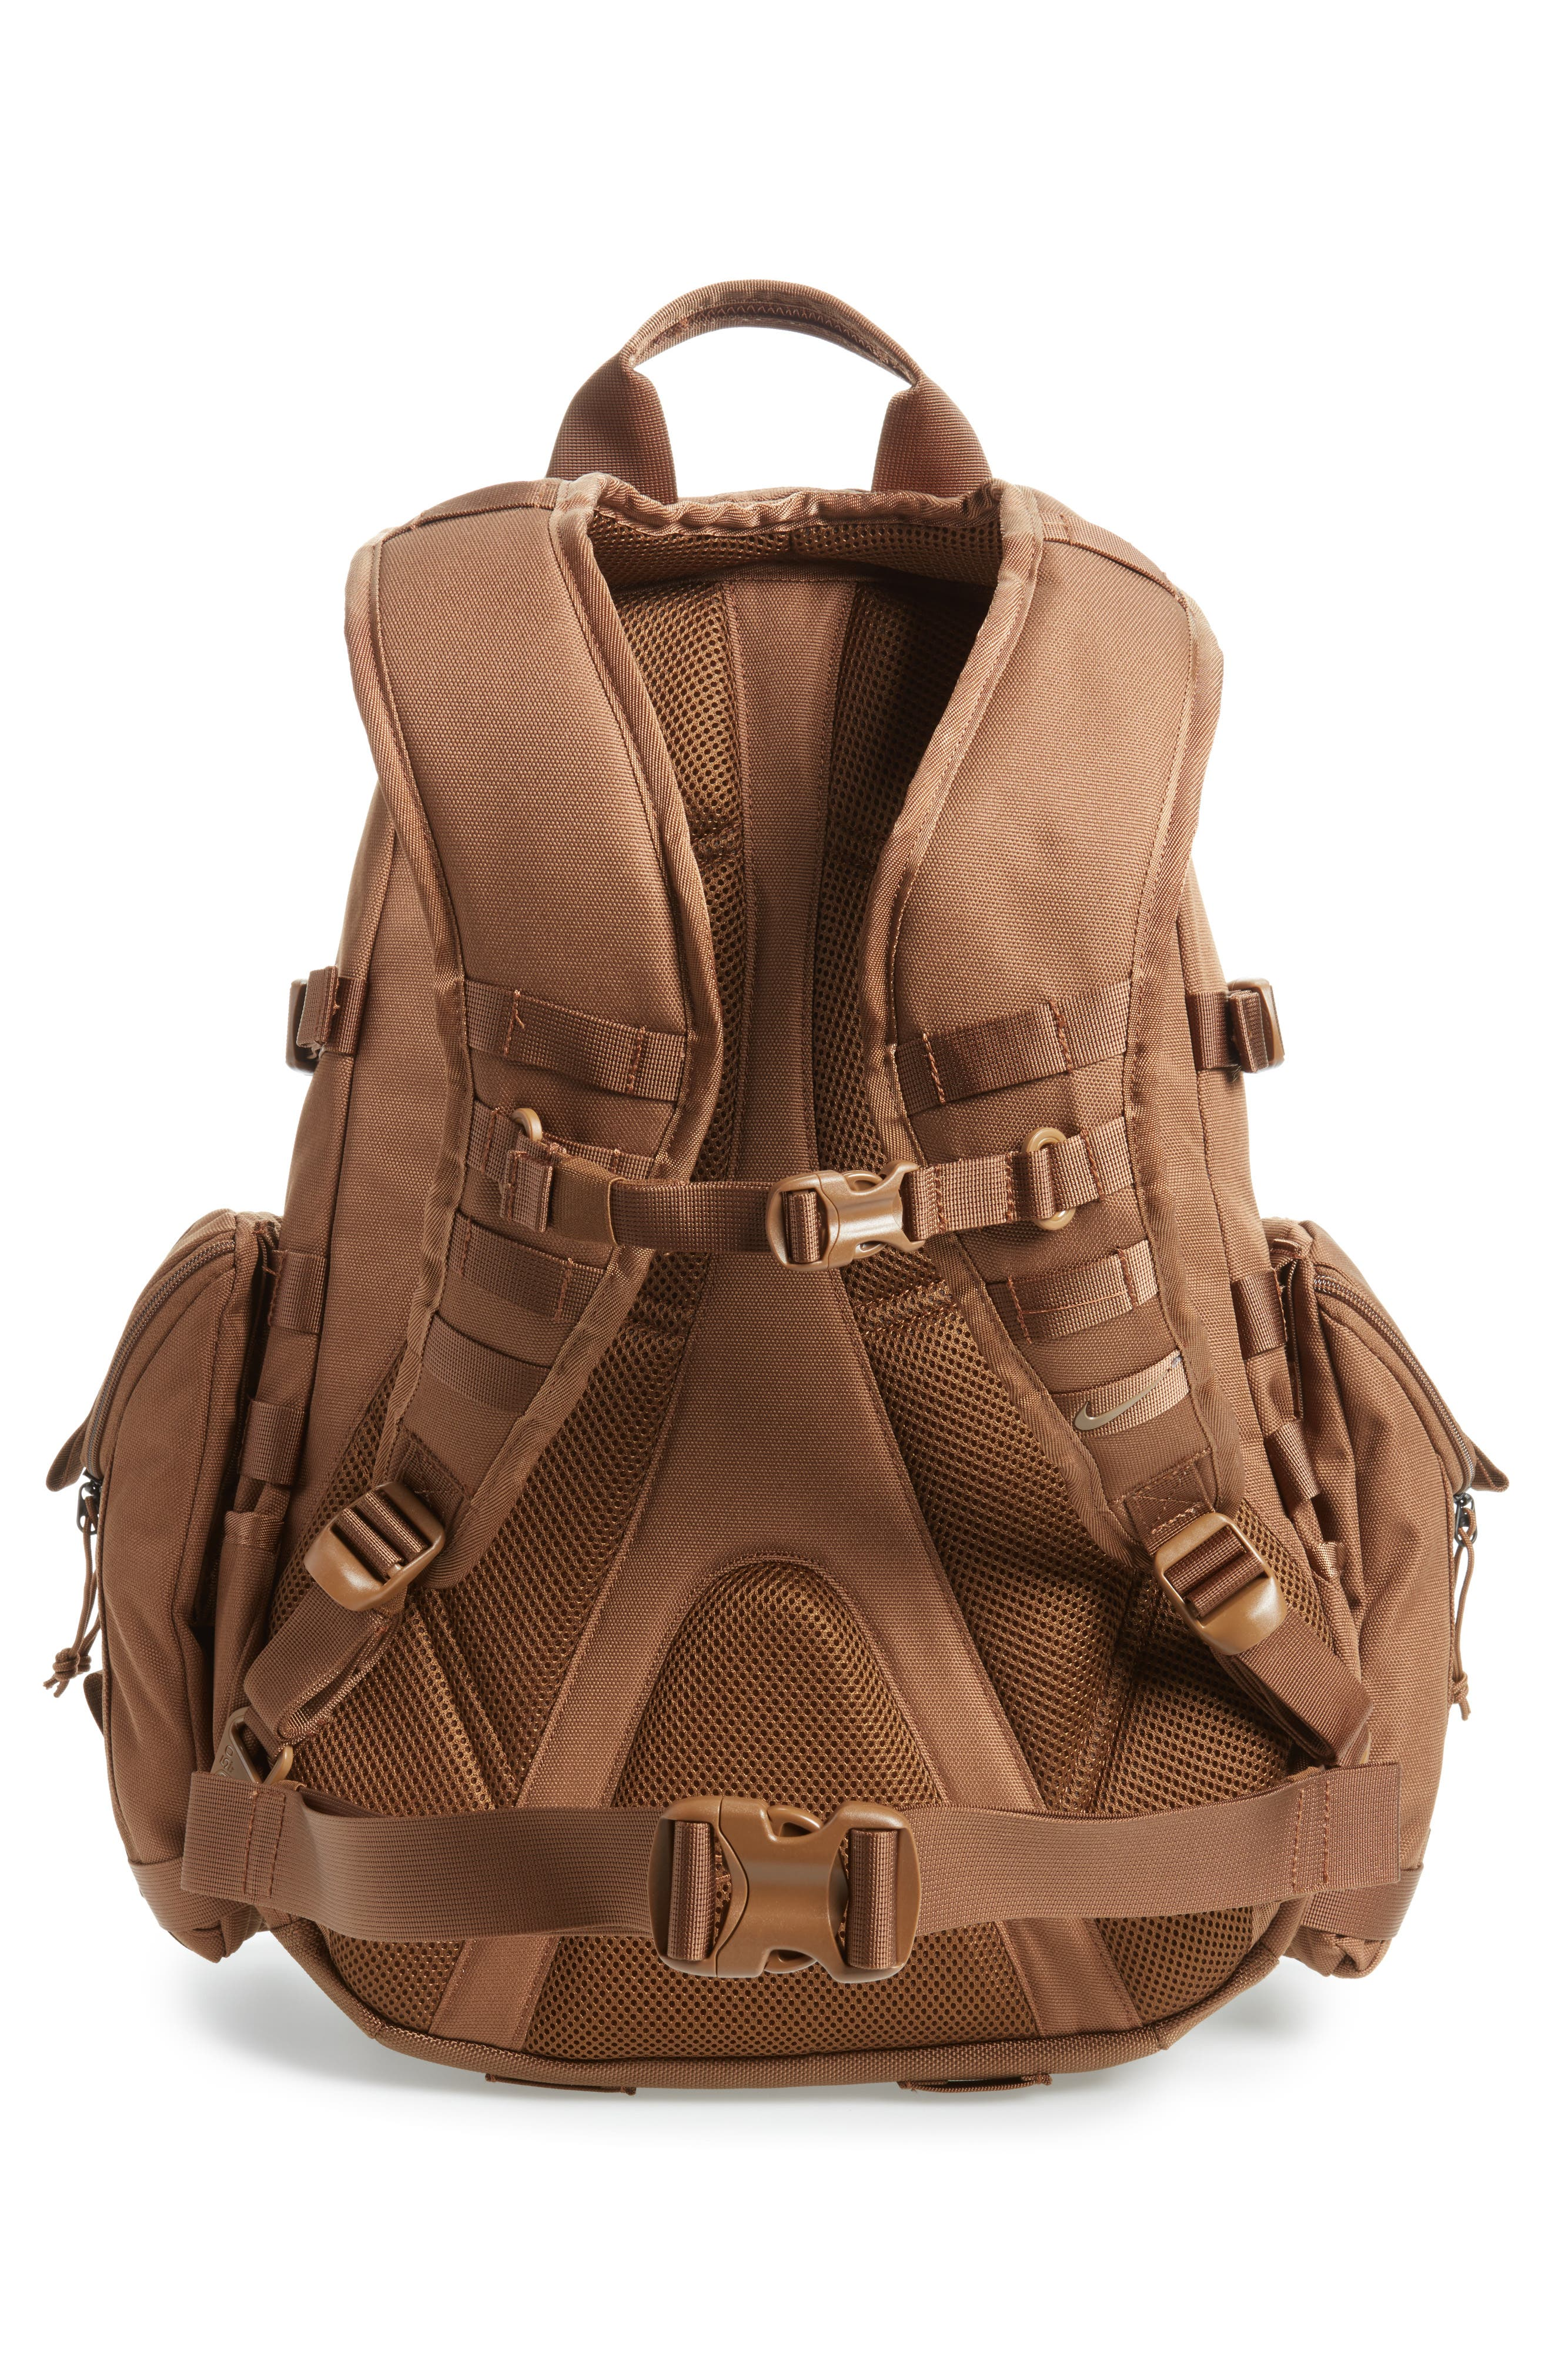 SFS Responder Backpack,                             Alternate thumbnail 3, color,                             Military Brown/ Military Brown